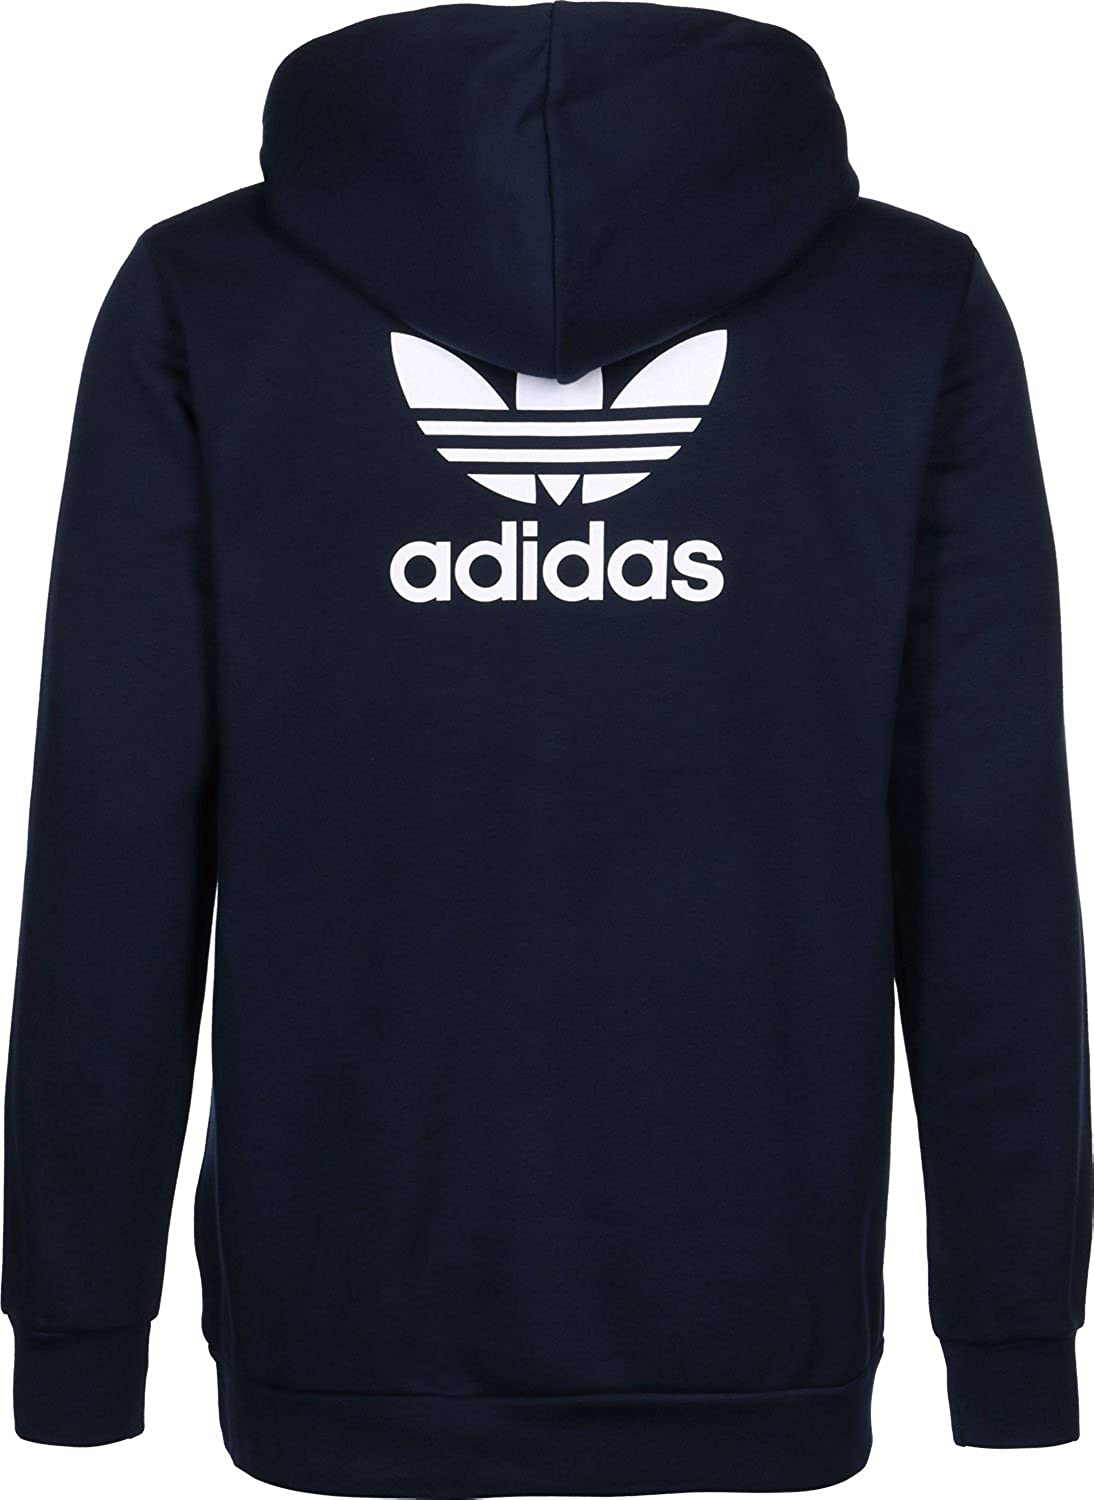 adidas Trefoil Fleece sweat à capuche navy: